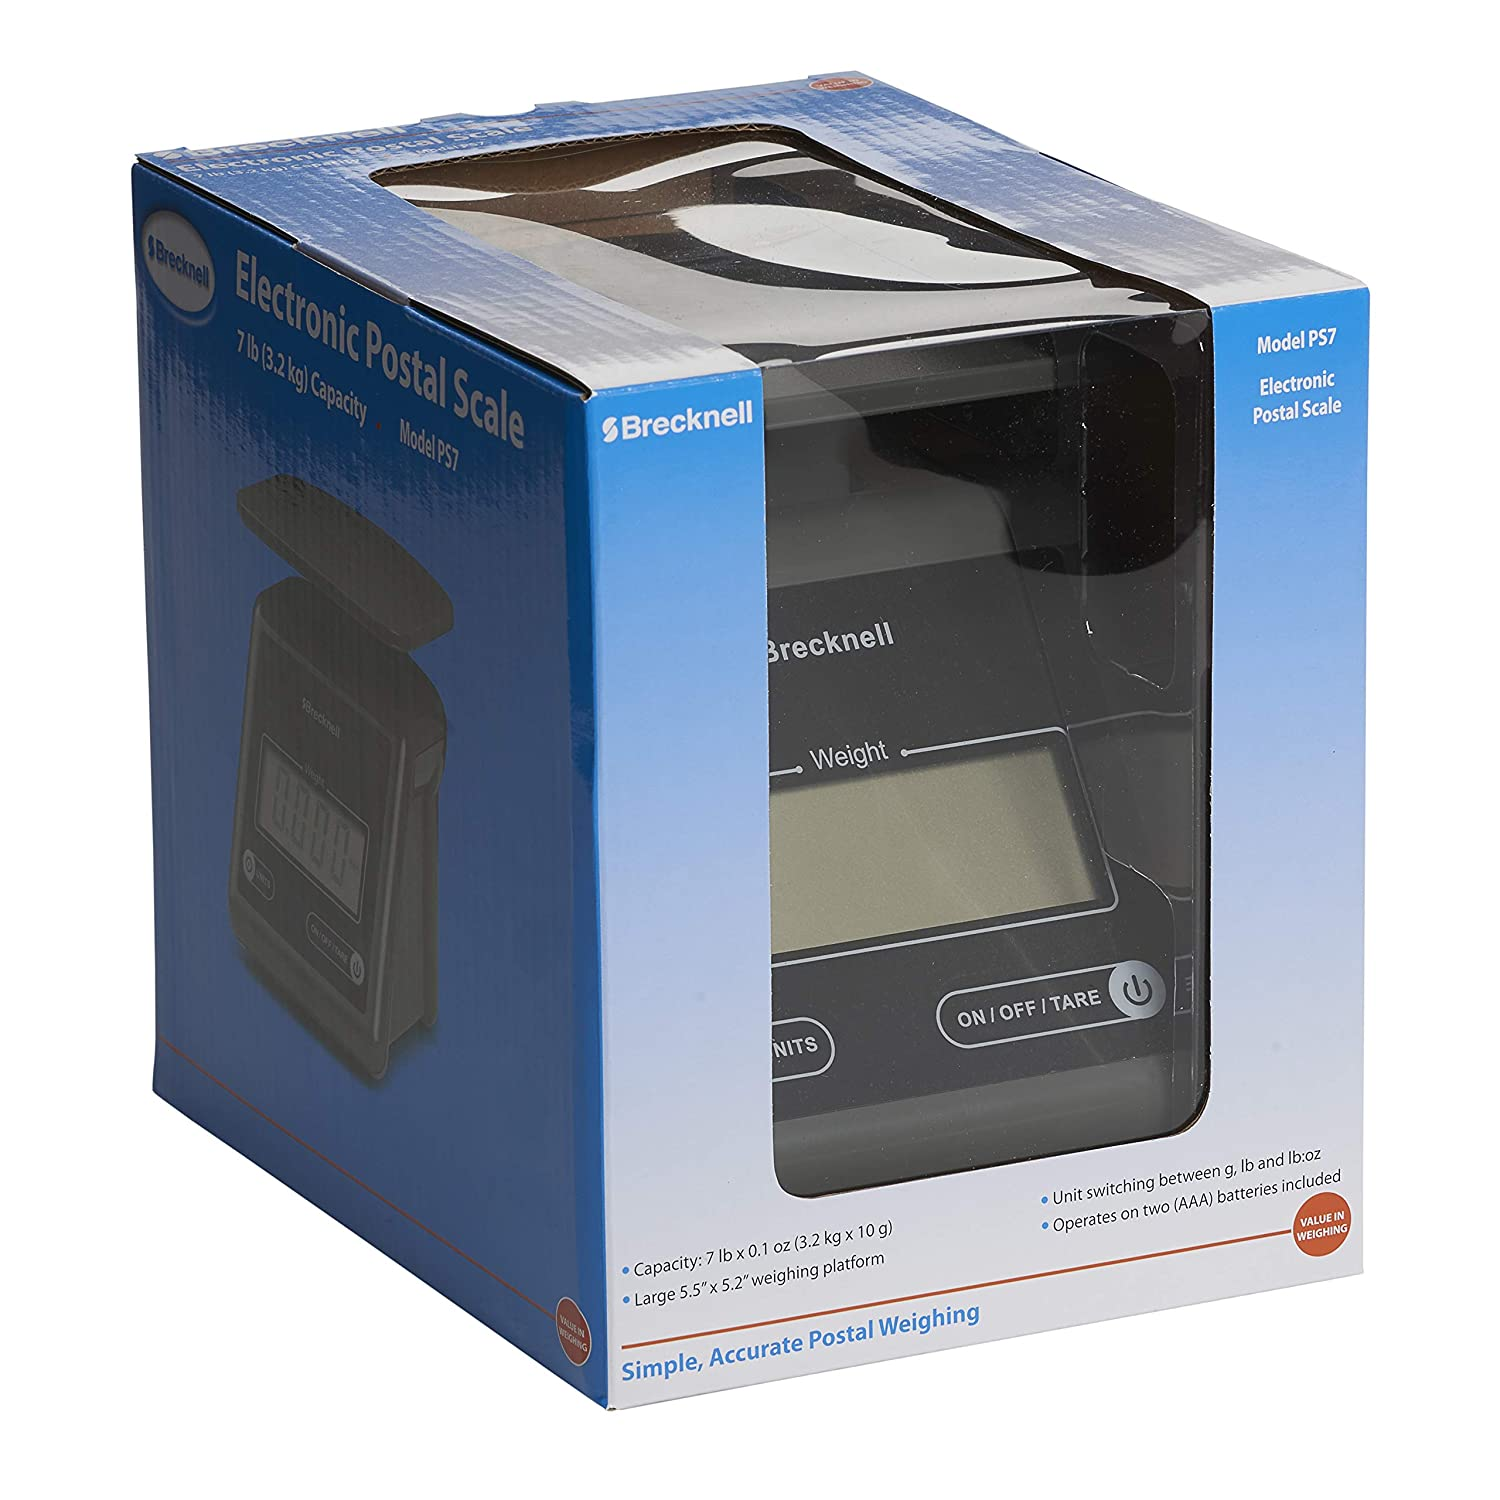 e7b9556e3104 Brecknell Electronic Postal Scale, 7 Lbs Capacity, 6-4/5 x 5-3/5 Inches  Platform, Gray (PS7)